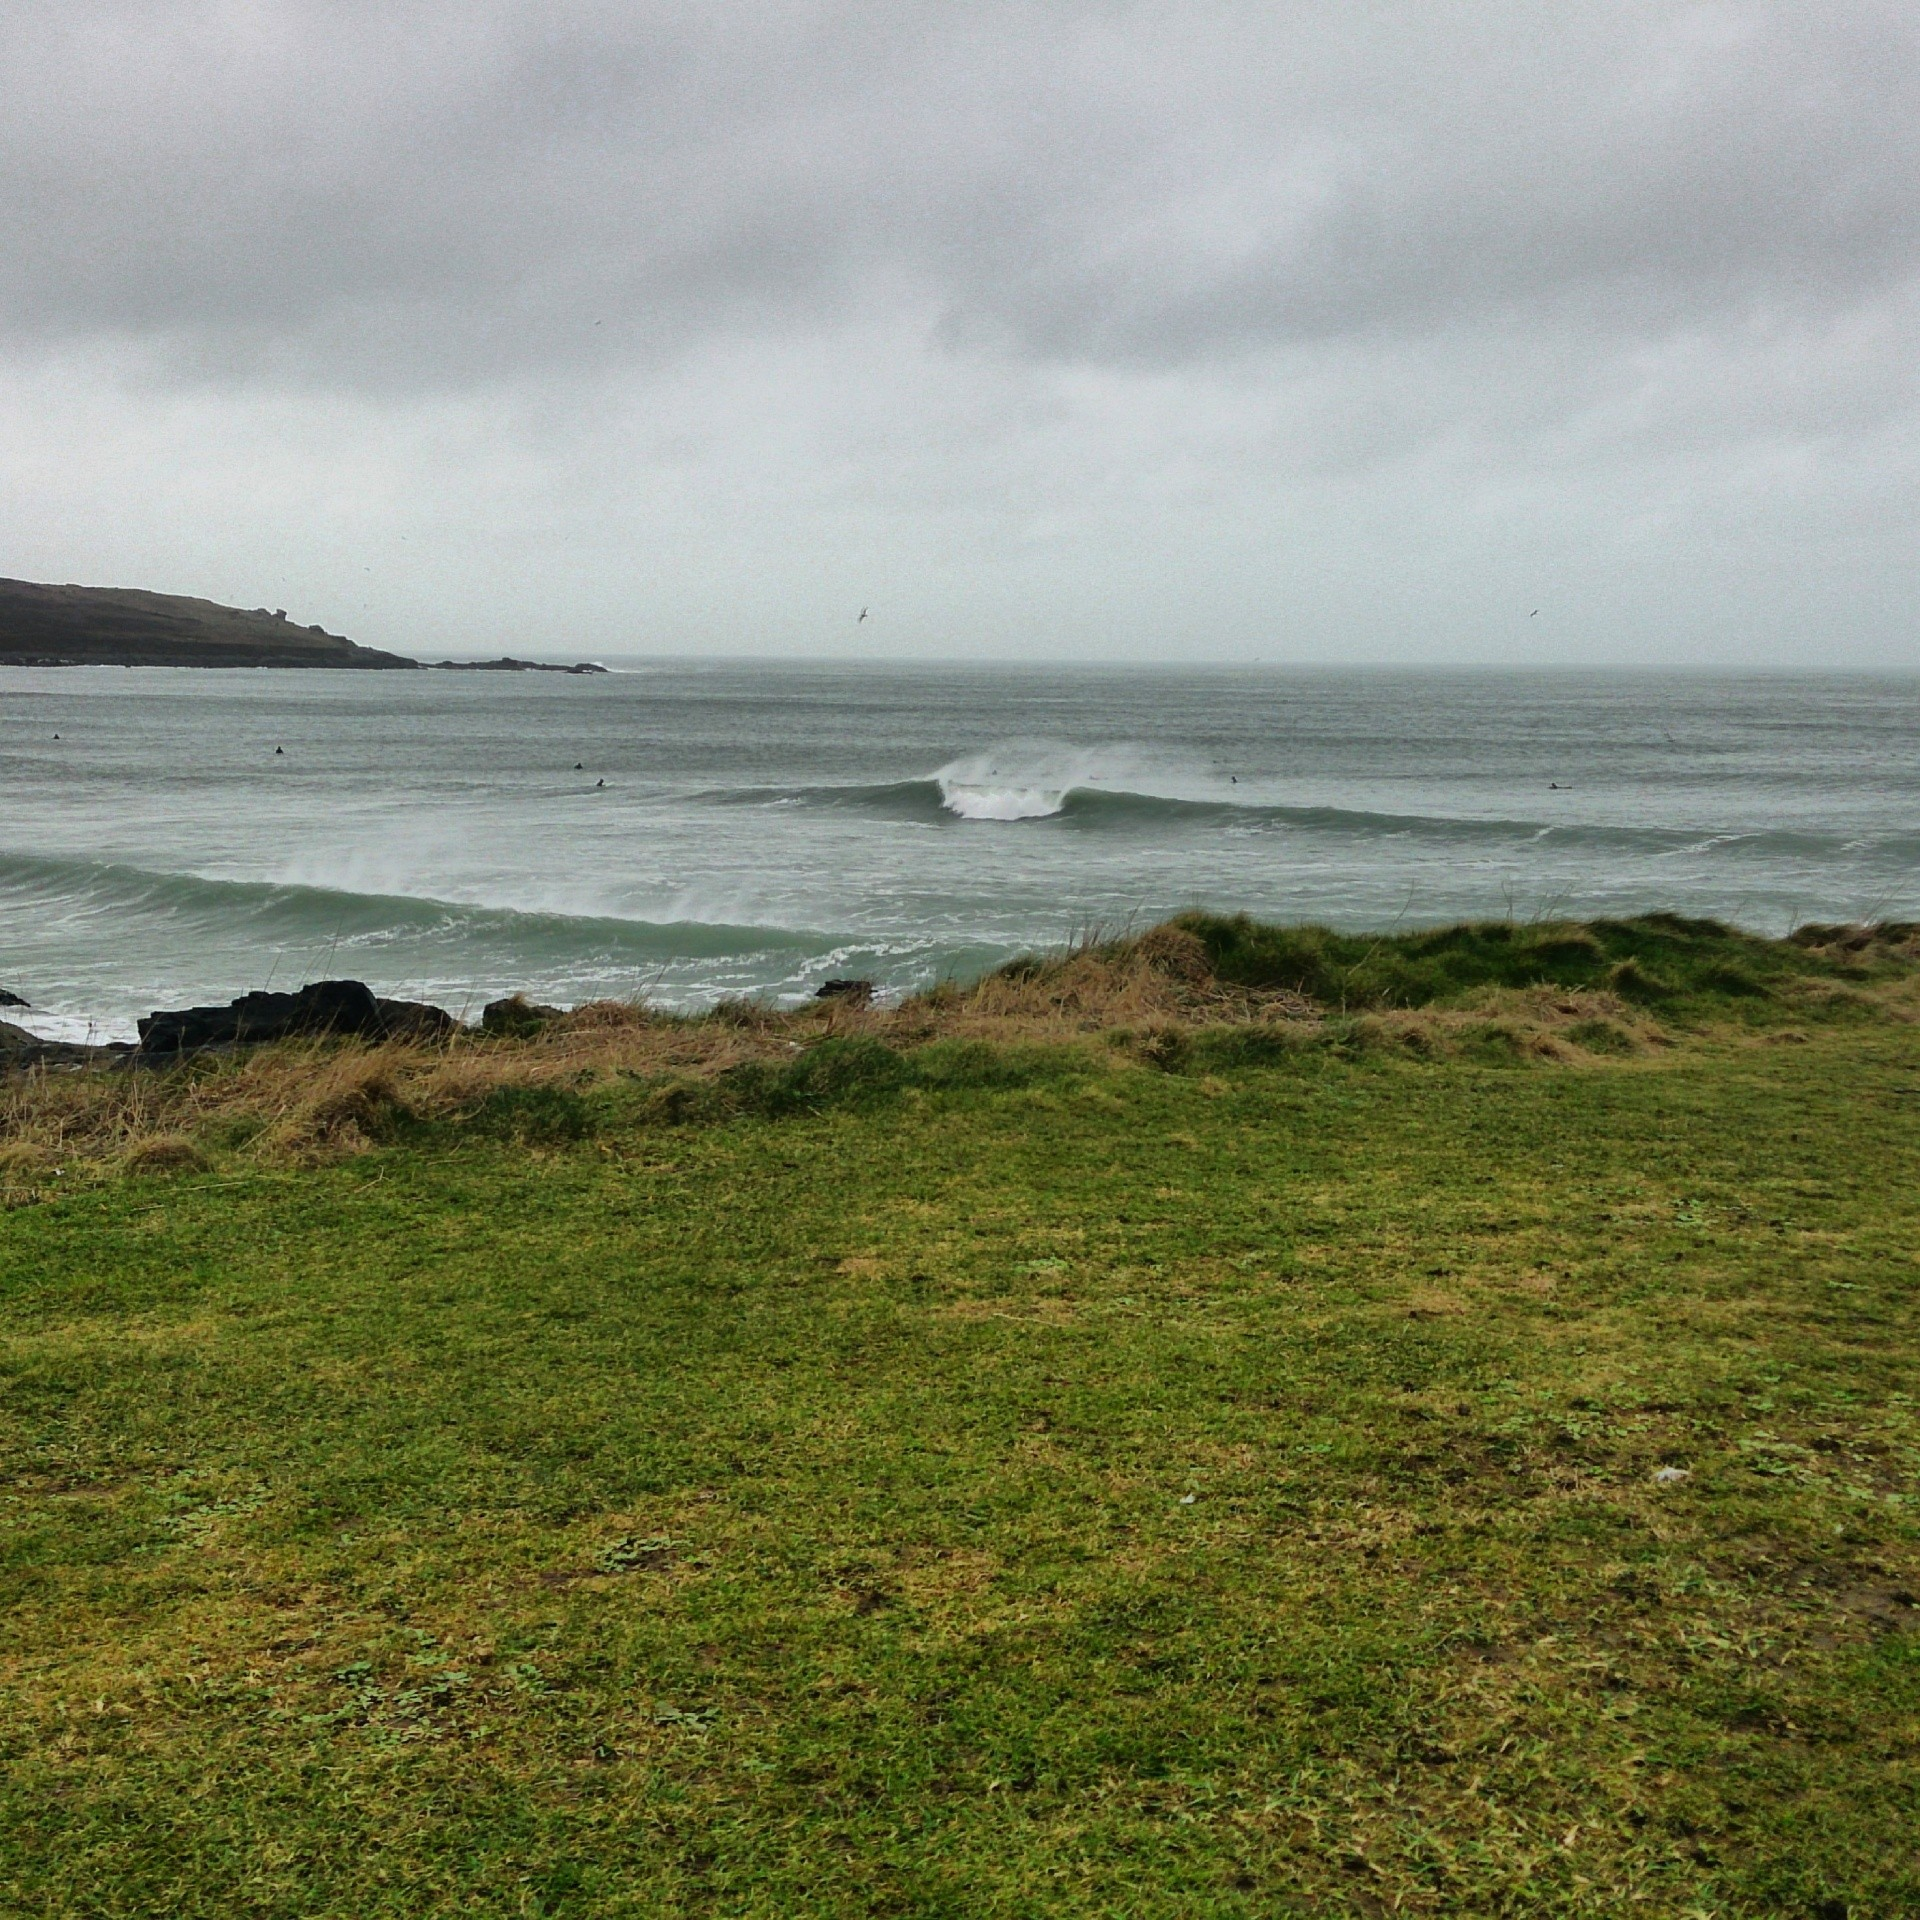 rory foster's photo of Porthmeor